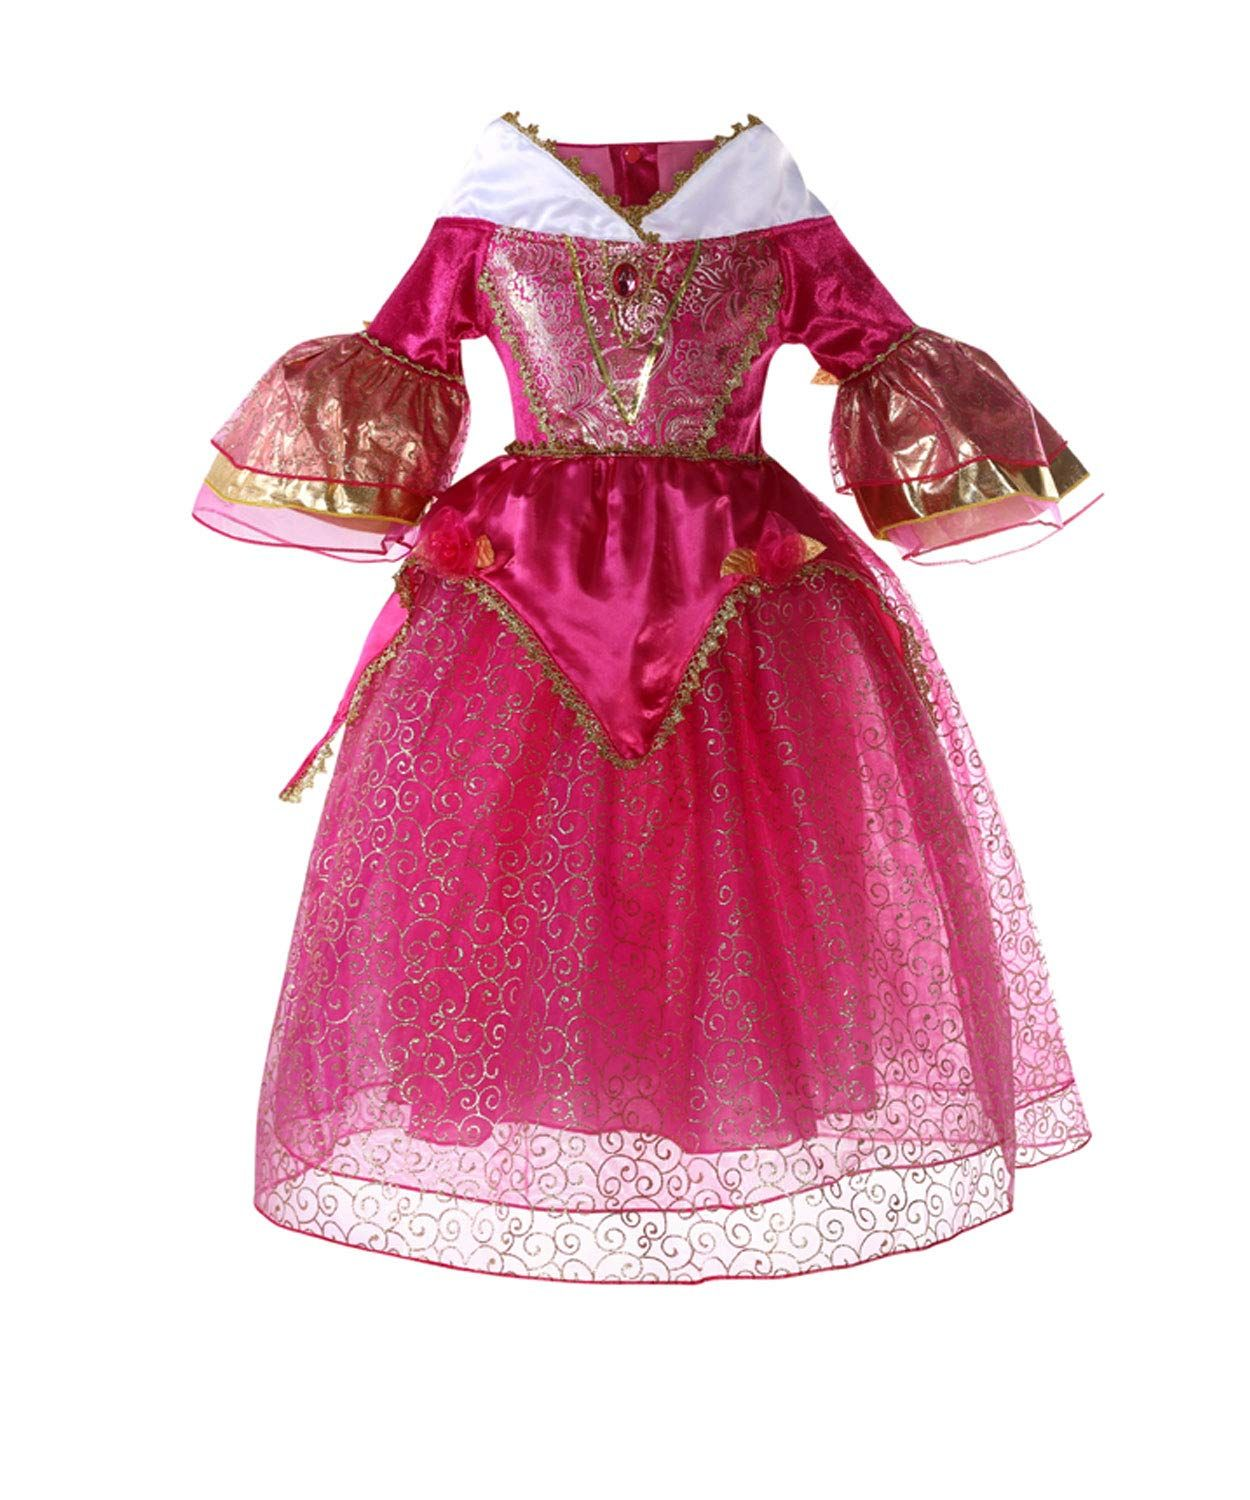 SINMOO Sleeping Beauty Deluxe Pink Party Princess Aurora